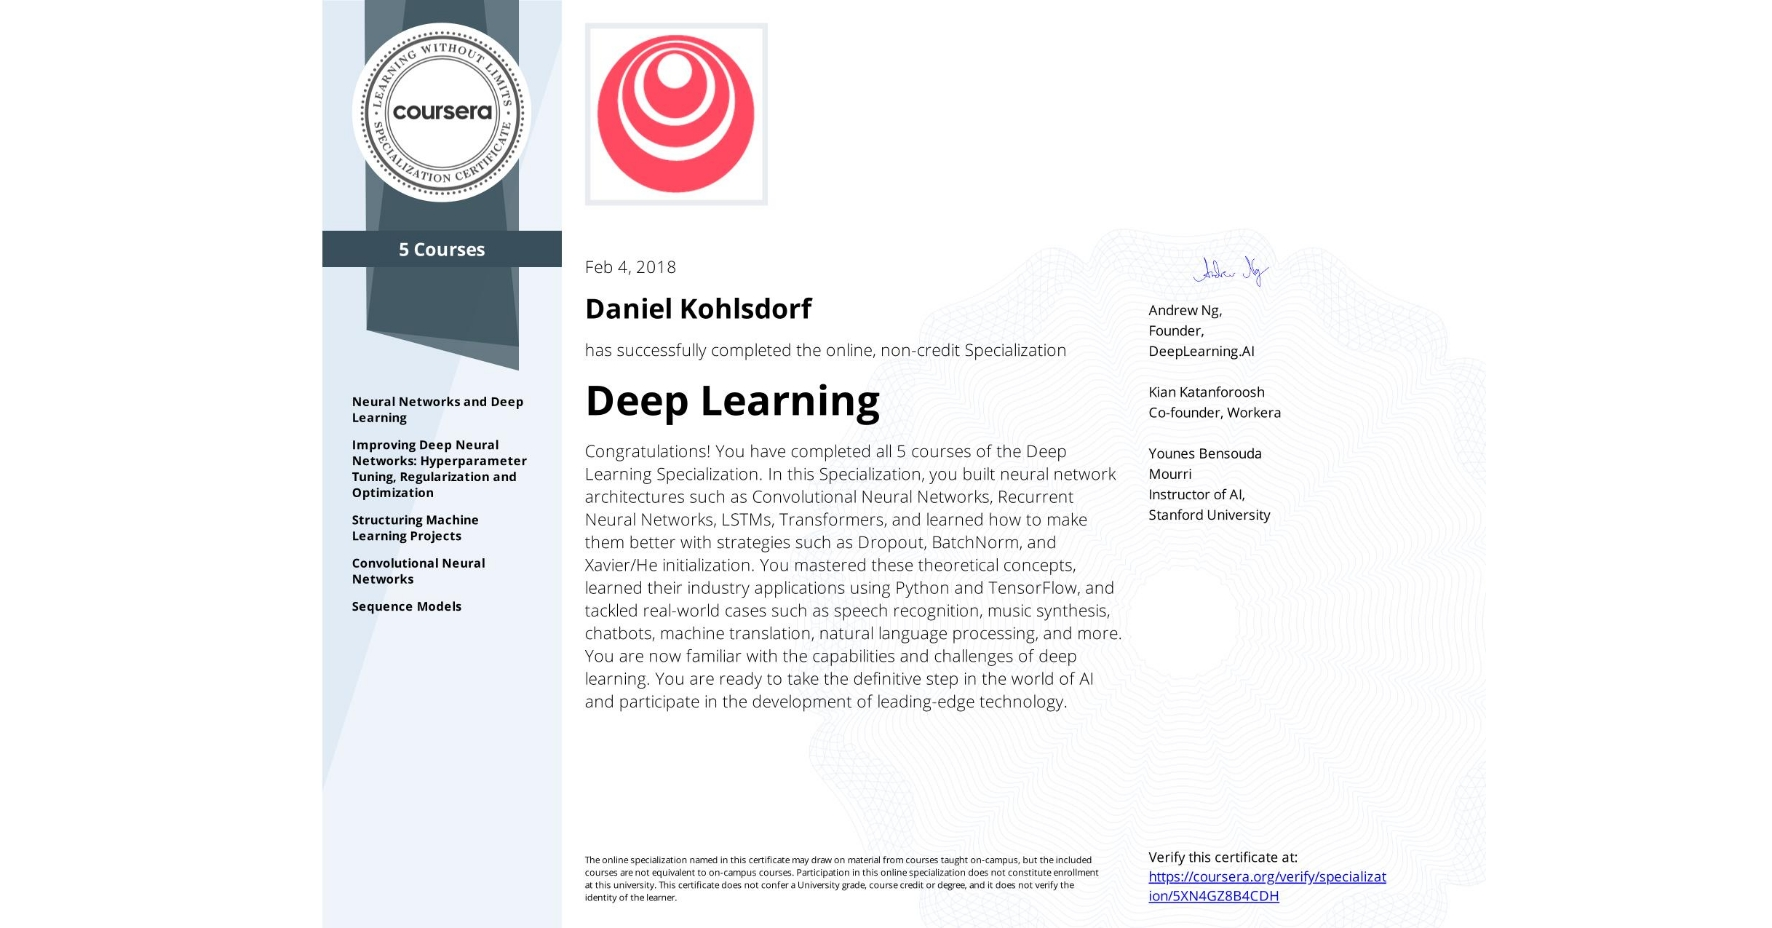 View certificate for Daniel Kohlsdorf, Deep Learning, offered through Coursera. Congratulations! You have completed all five courses of the Deep Learning Specialization.  In this Specialization, you built neural network architectures such as Convolutional Neural Networks, Recurrent Neural Networks, LSTMs, Transformers and learned how to make them better with strategies such as Dropout, BatchNorm, Xavier/He initialization, and more. You mastered these theoretical concepts and their application using Python and TensorFlow and also tackled real-world case studies such as autonomous driving, sign language reading, music generation, computer vision, speech recognition, and natural language processing.   You're now familiar with the capabilities, challenges, and consequences of deep learning and are ready to participate in the development of leading-edge AI technology.